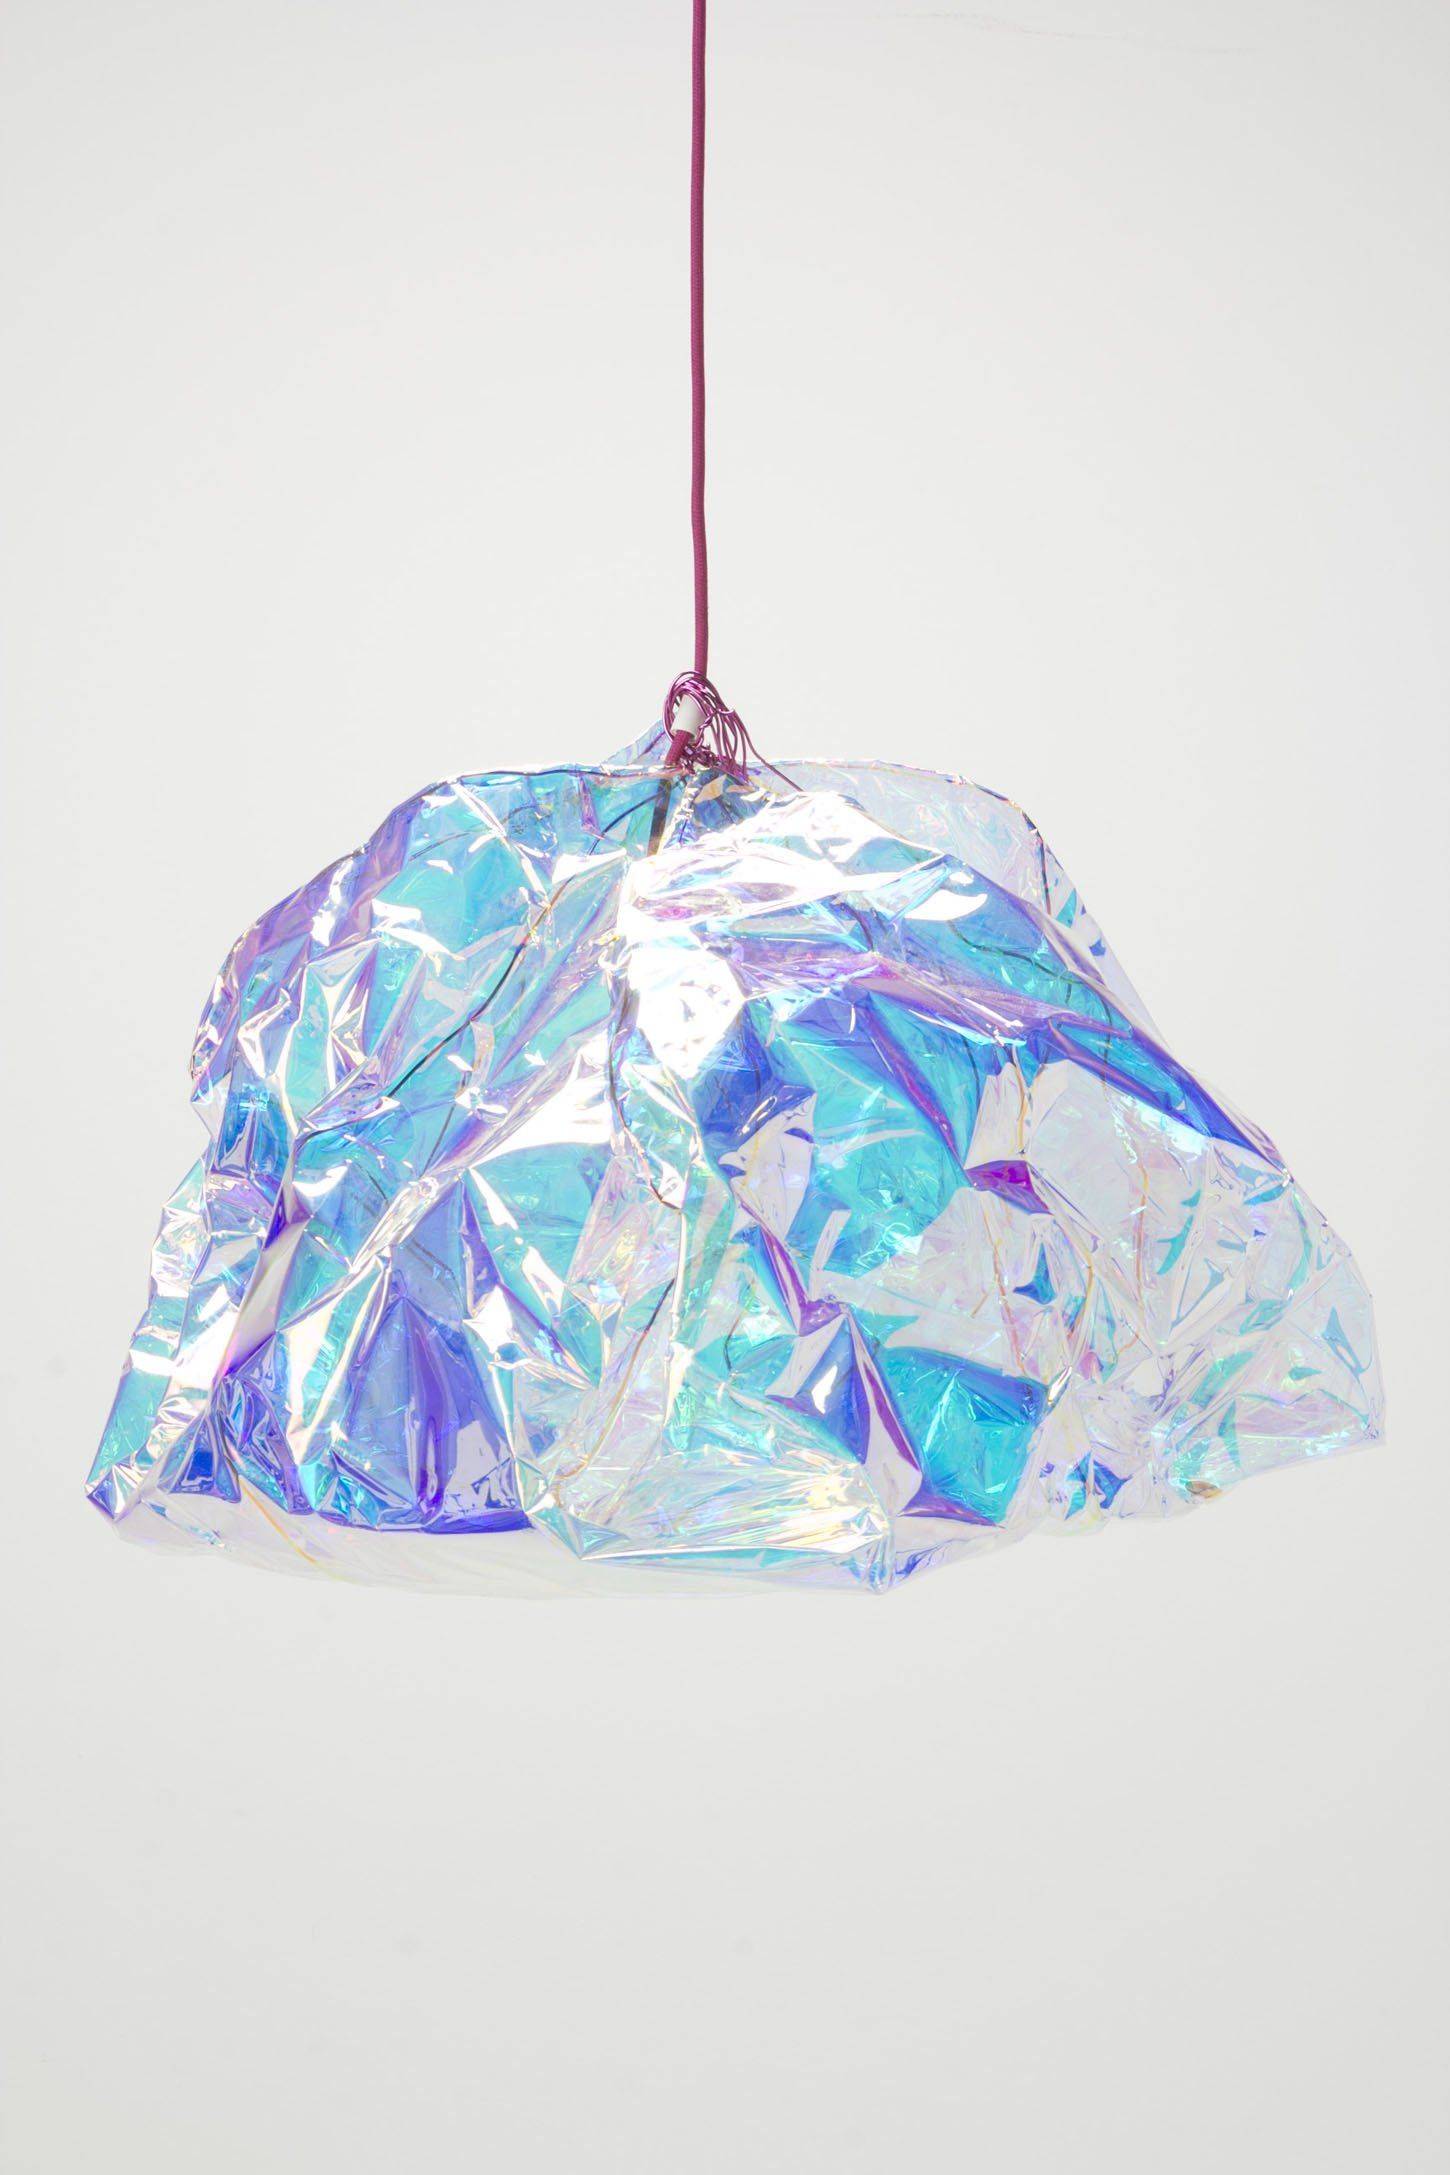 Diamond pendant lamp anthropologie design lighting